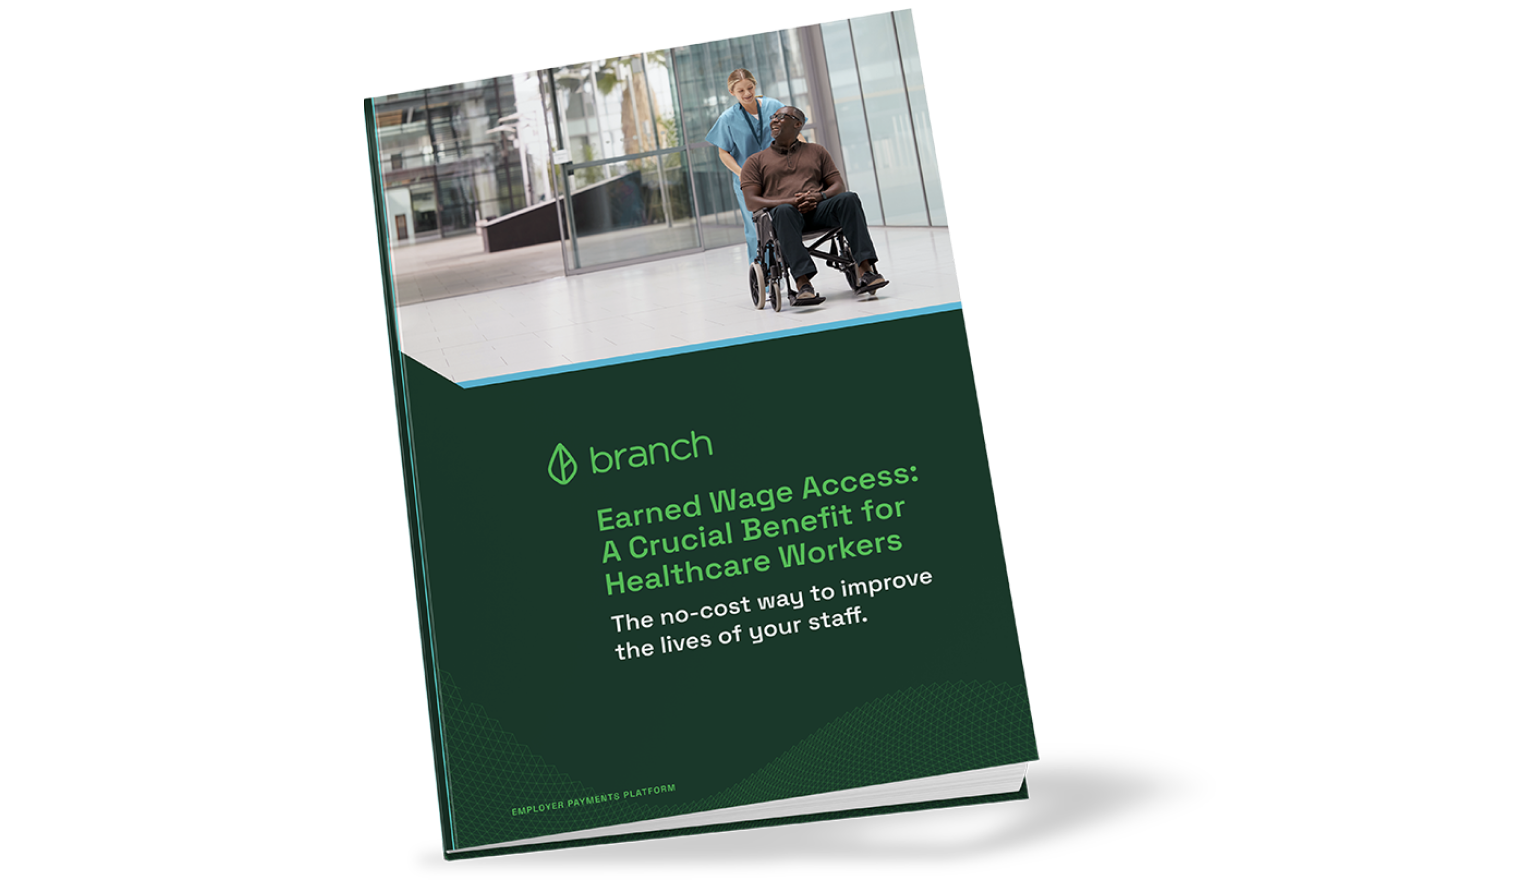 The no-cost way to improve the lives of your staff